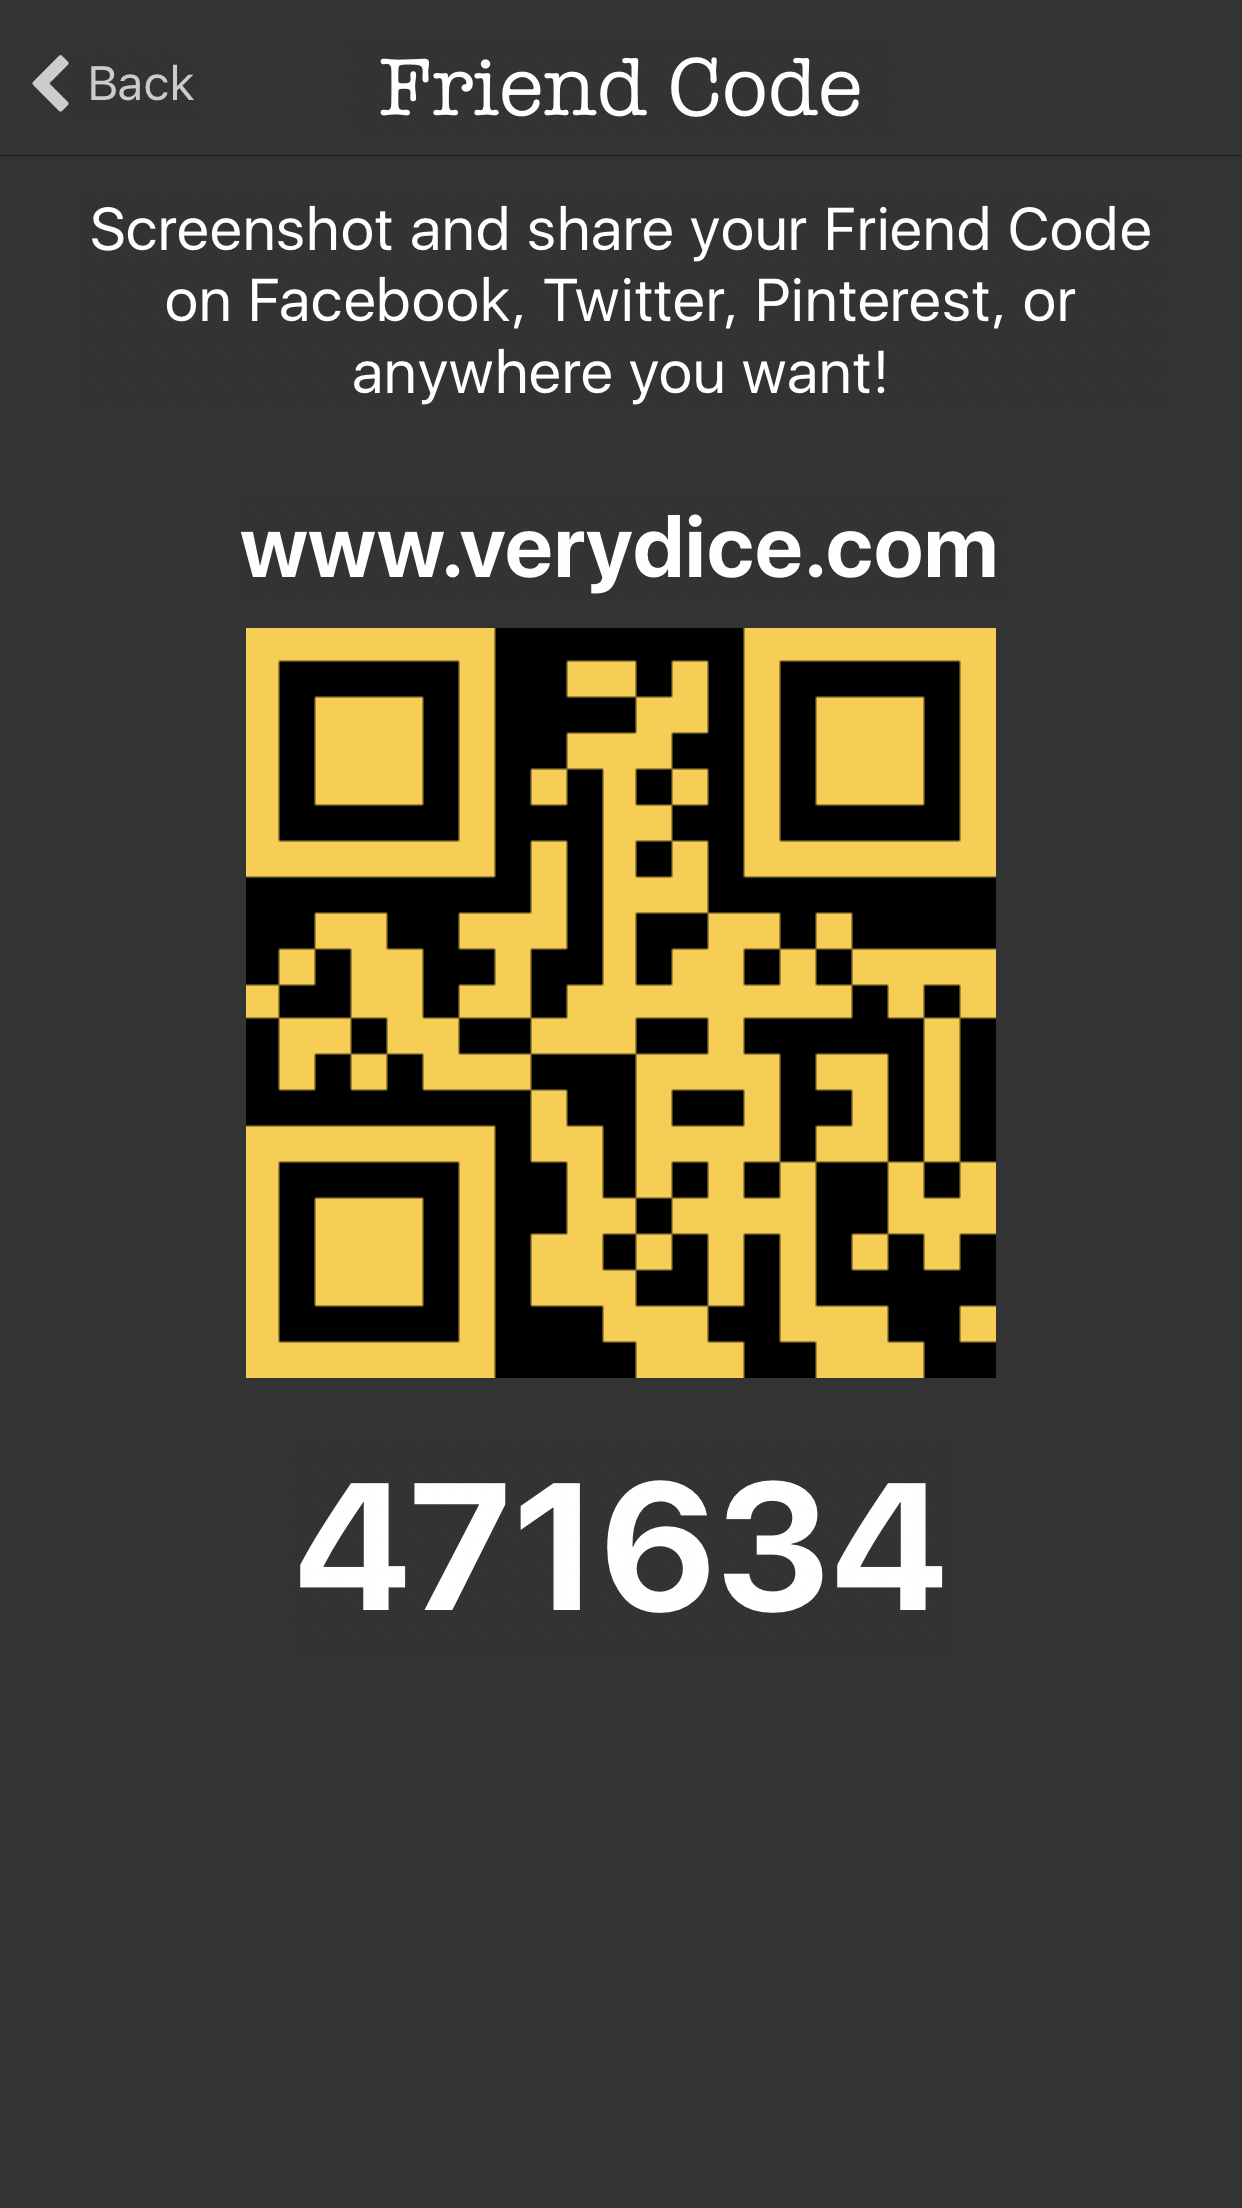 what is verydice